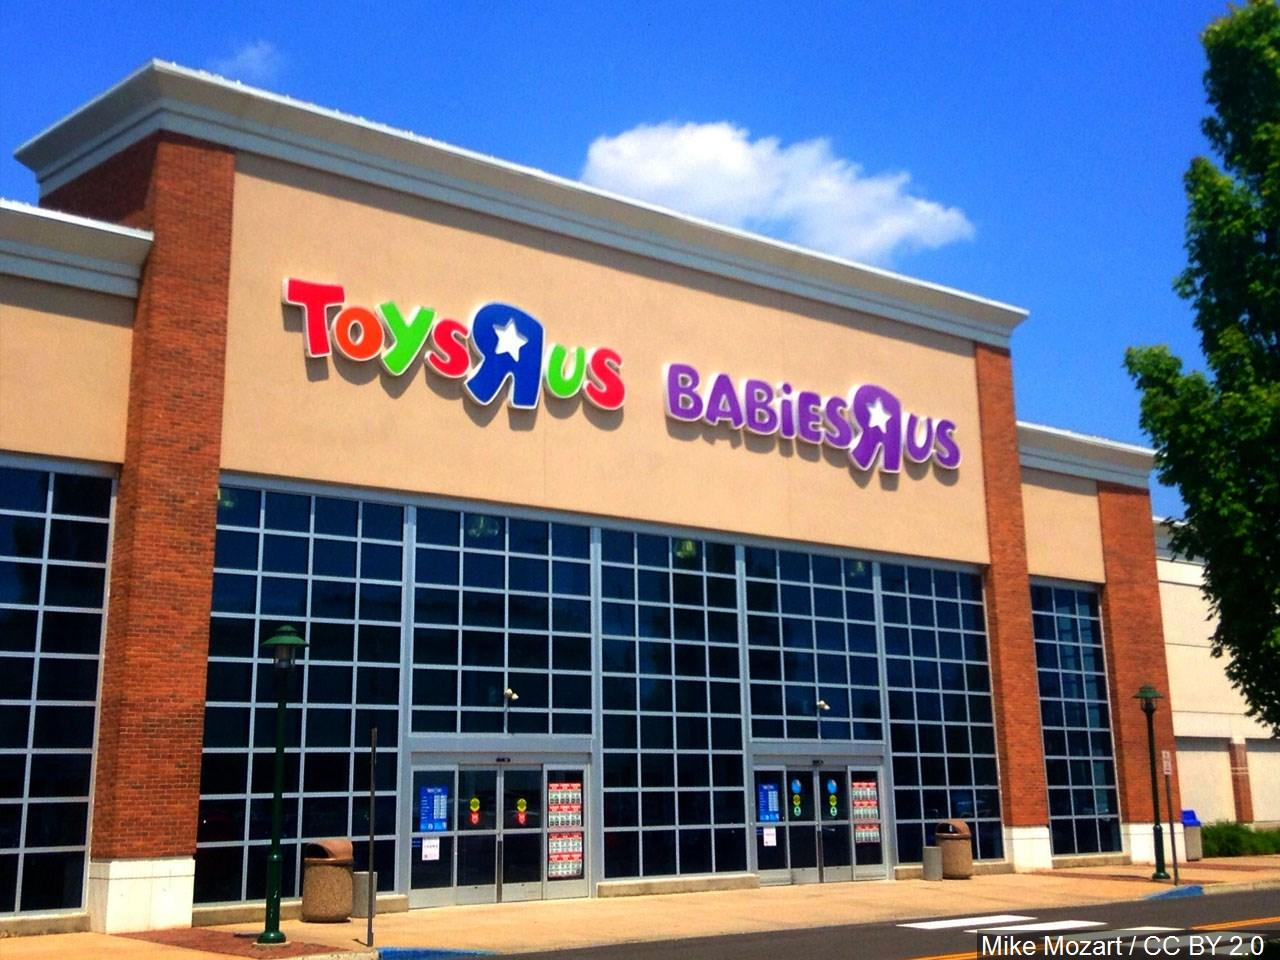 Toy retailer Toys R Us could file for bankruptcy as soon as this week, according to reports by The Wall Street Journal and CNBC. (MGN Online)